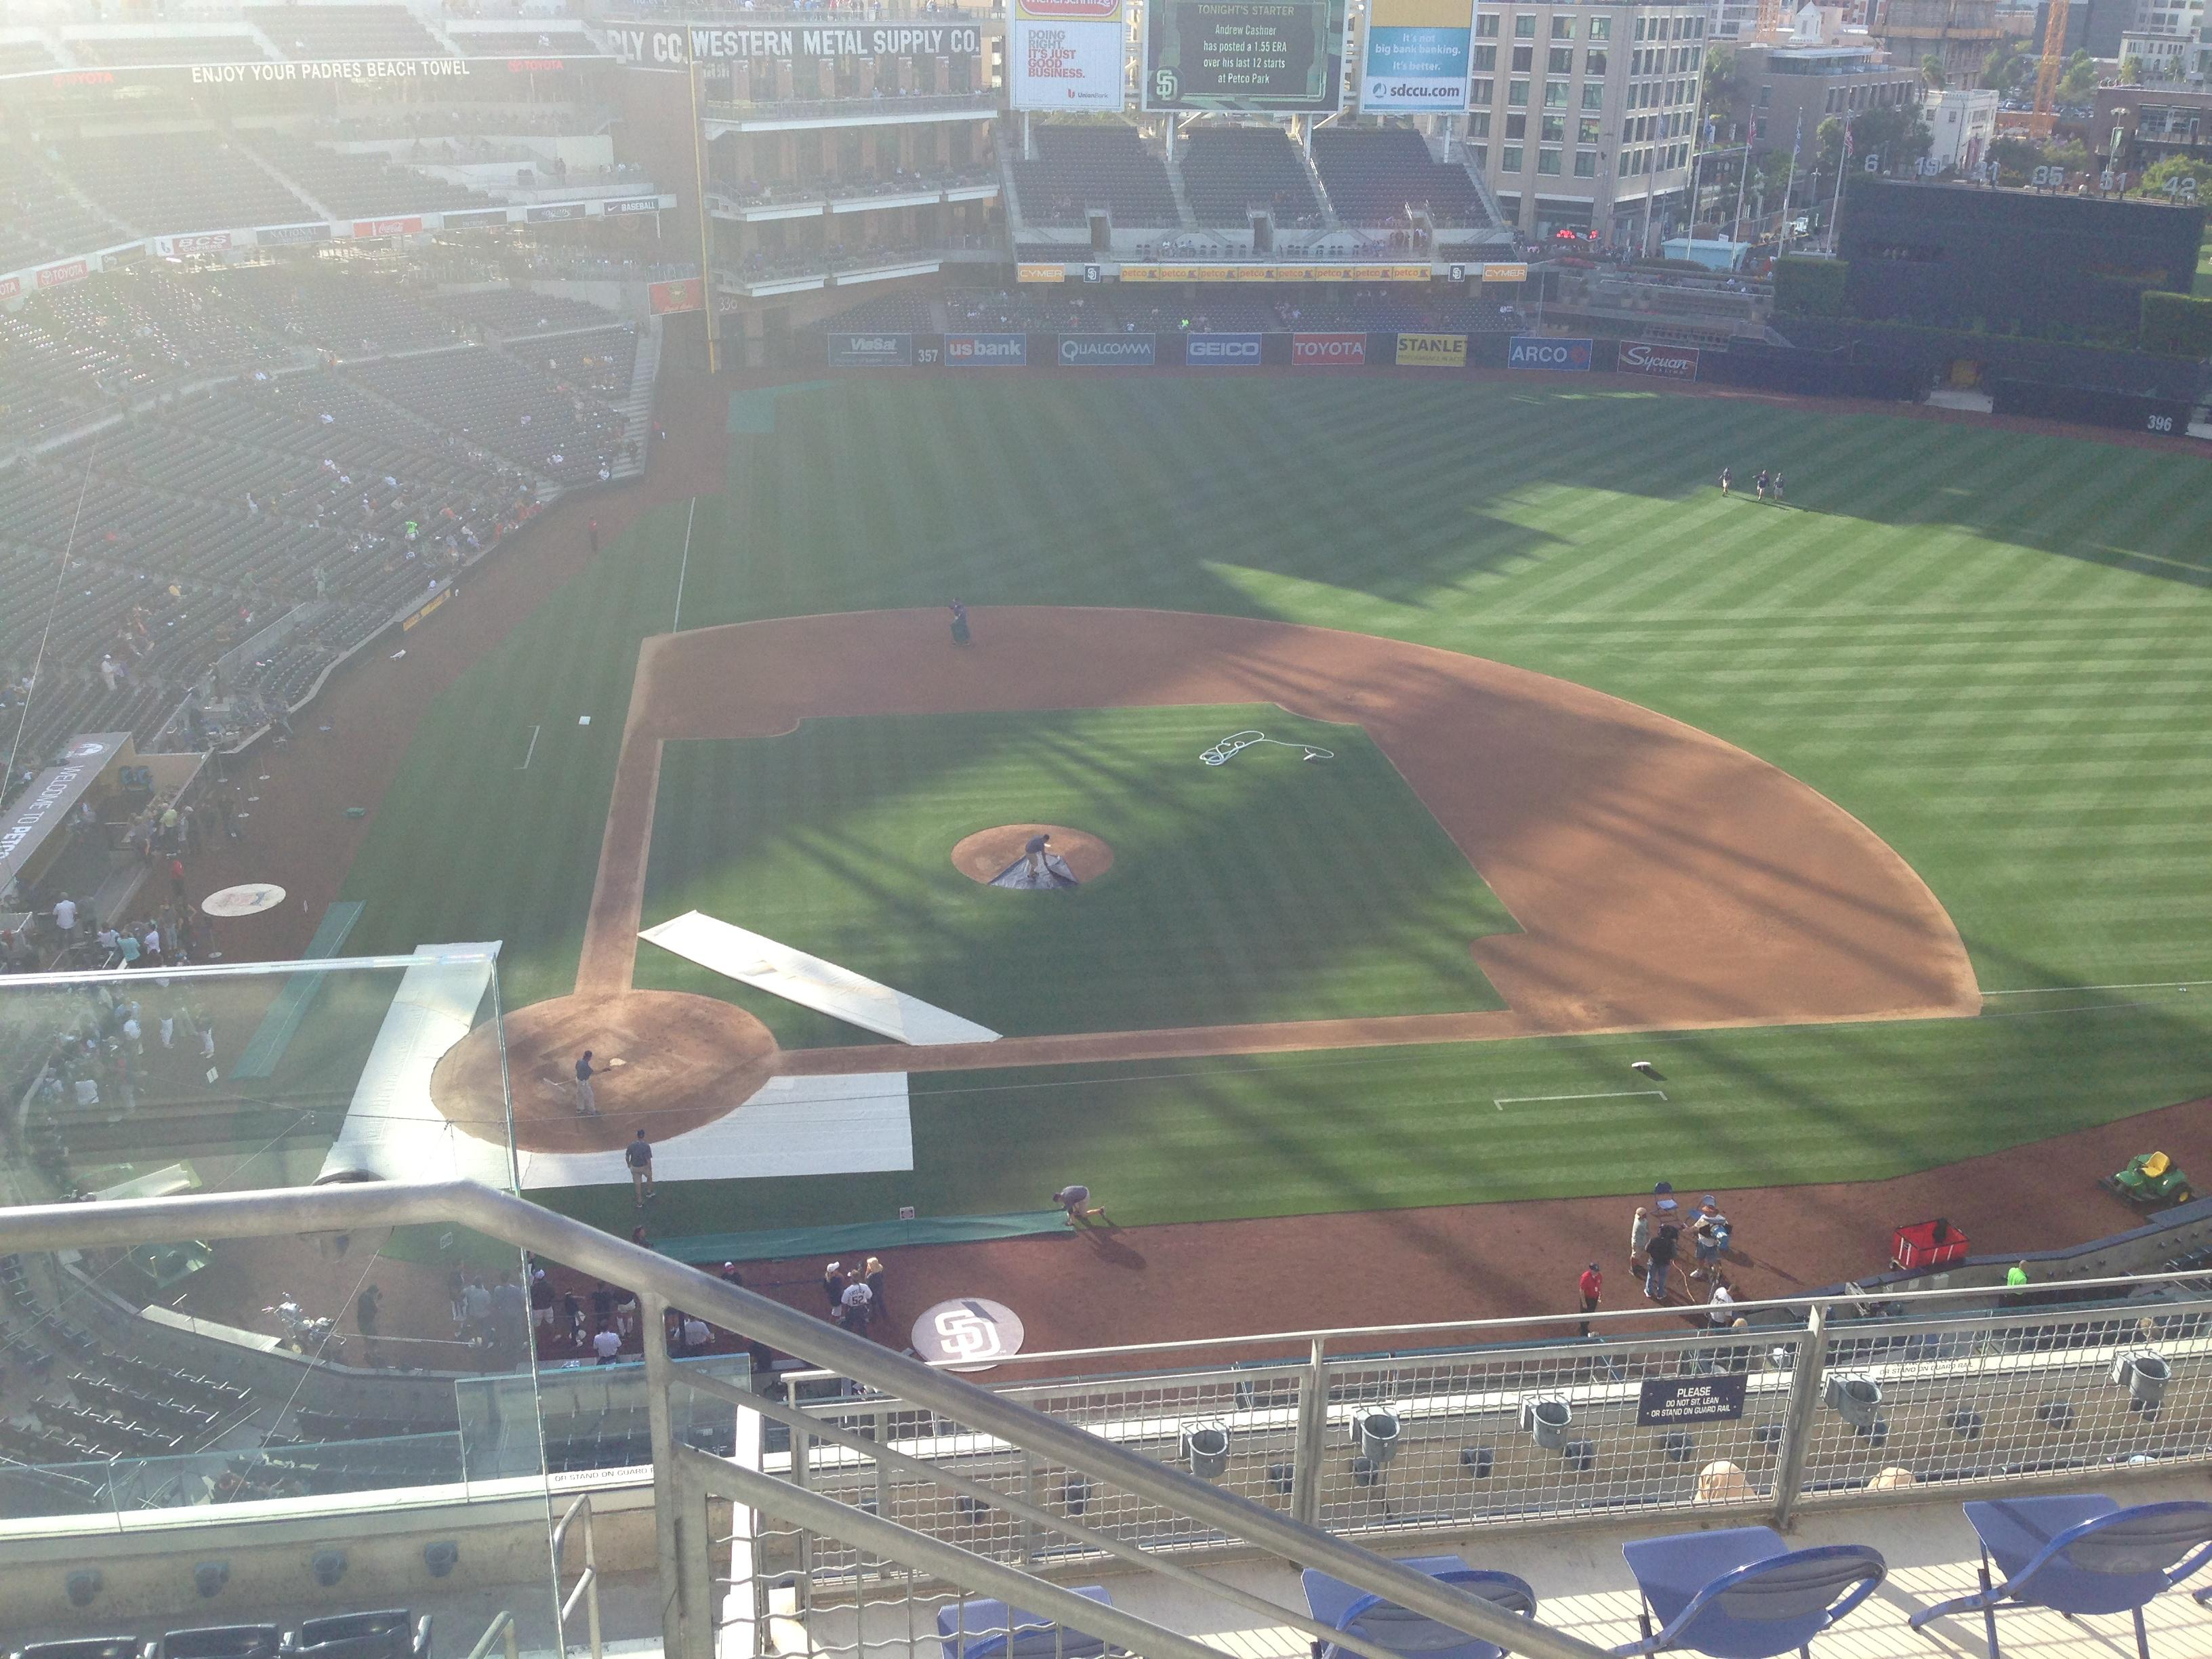 PETCO Park Section 309 Row 9 Seat 1